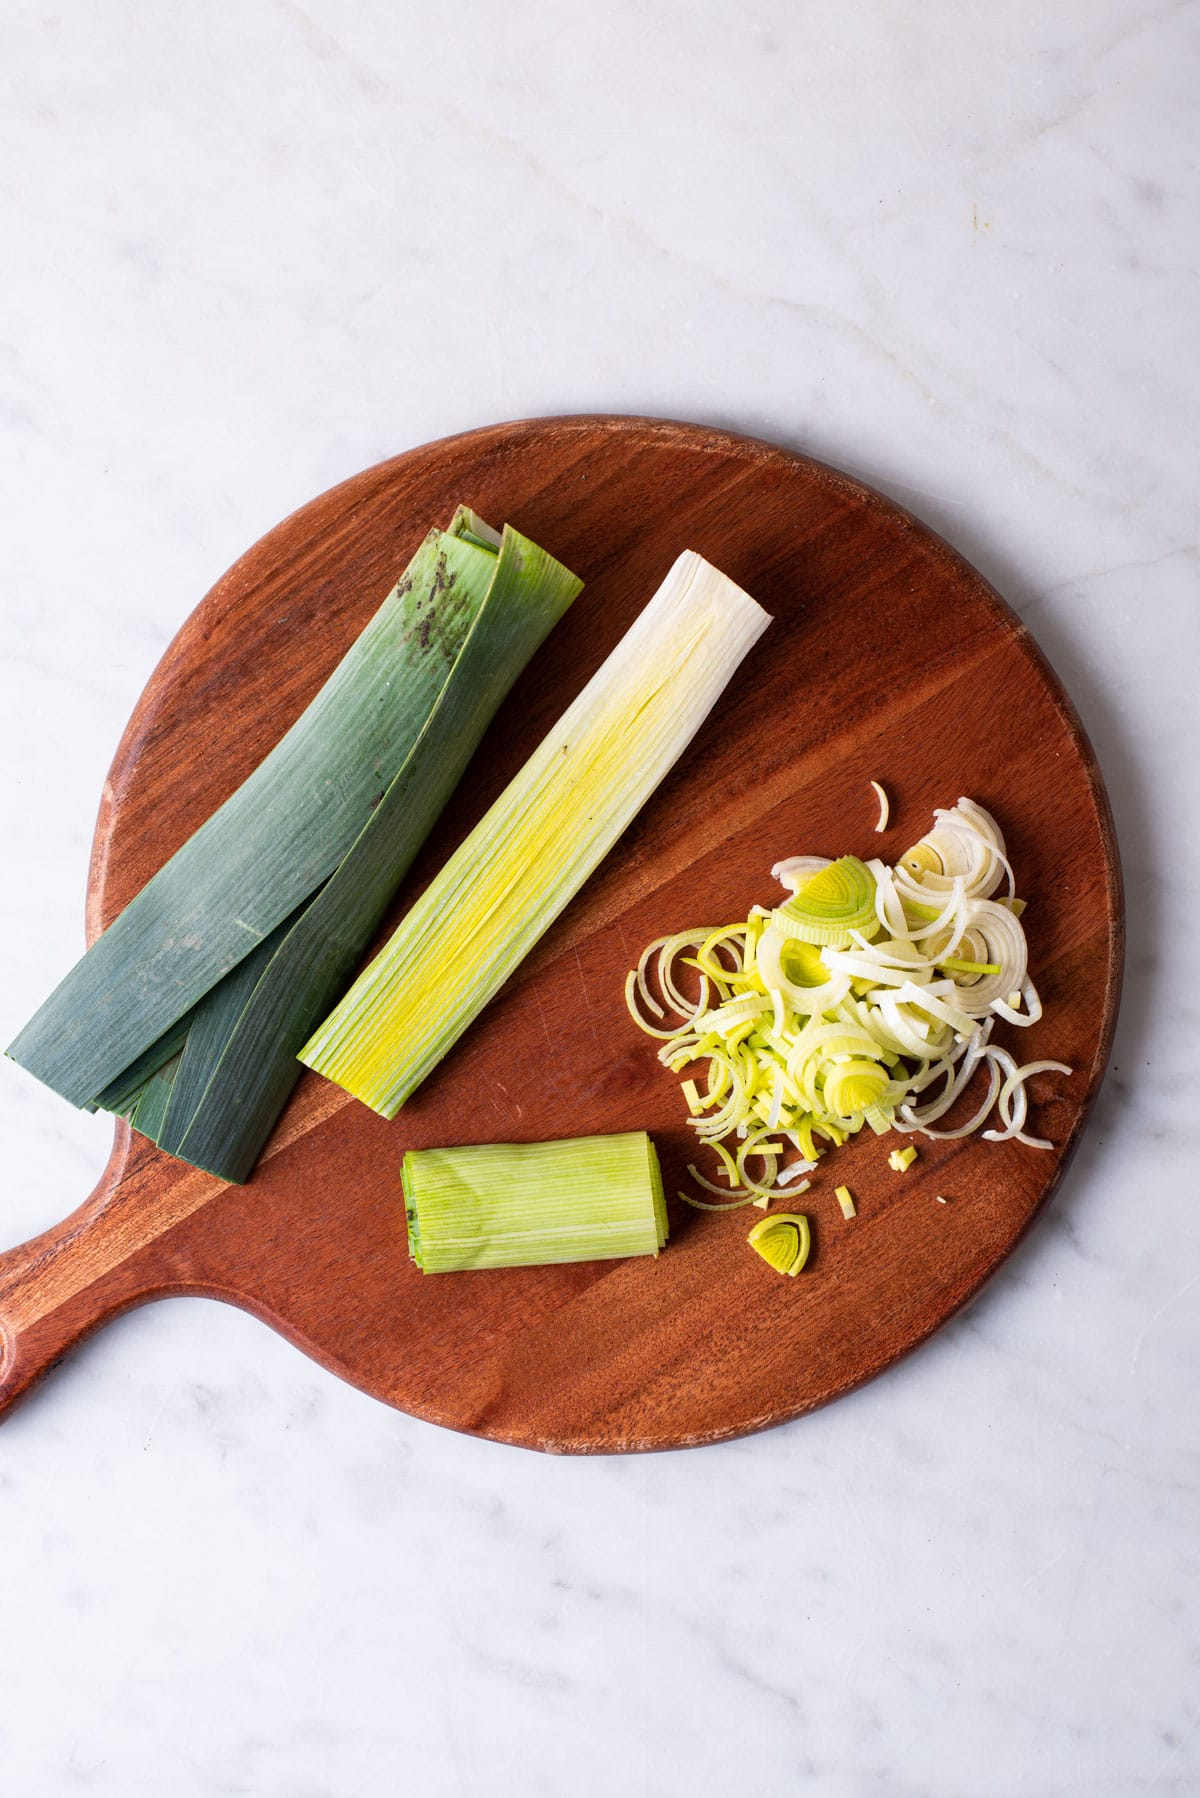 Three leeks on a wooden cutting board